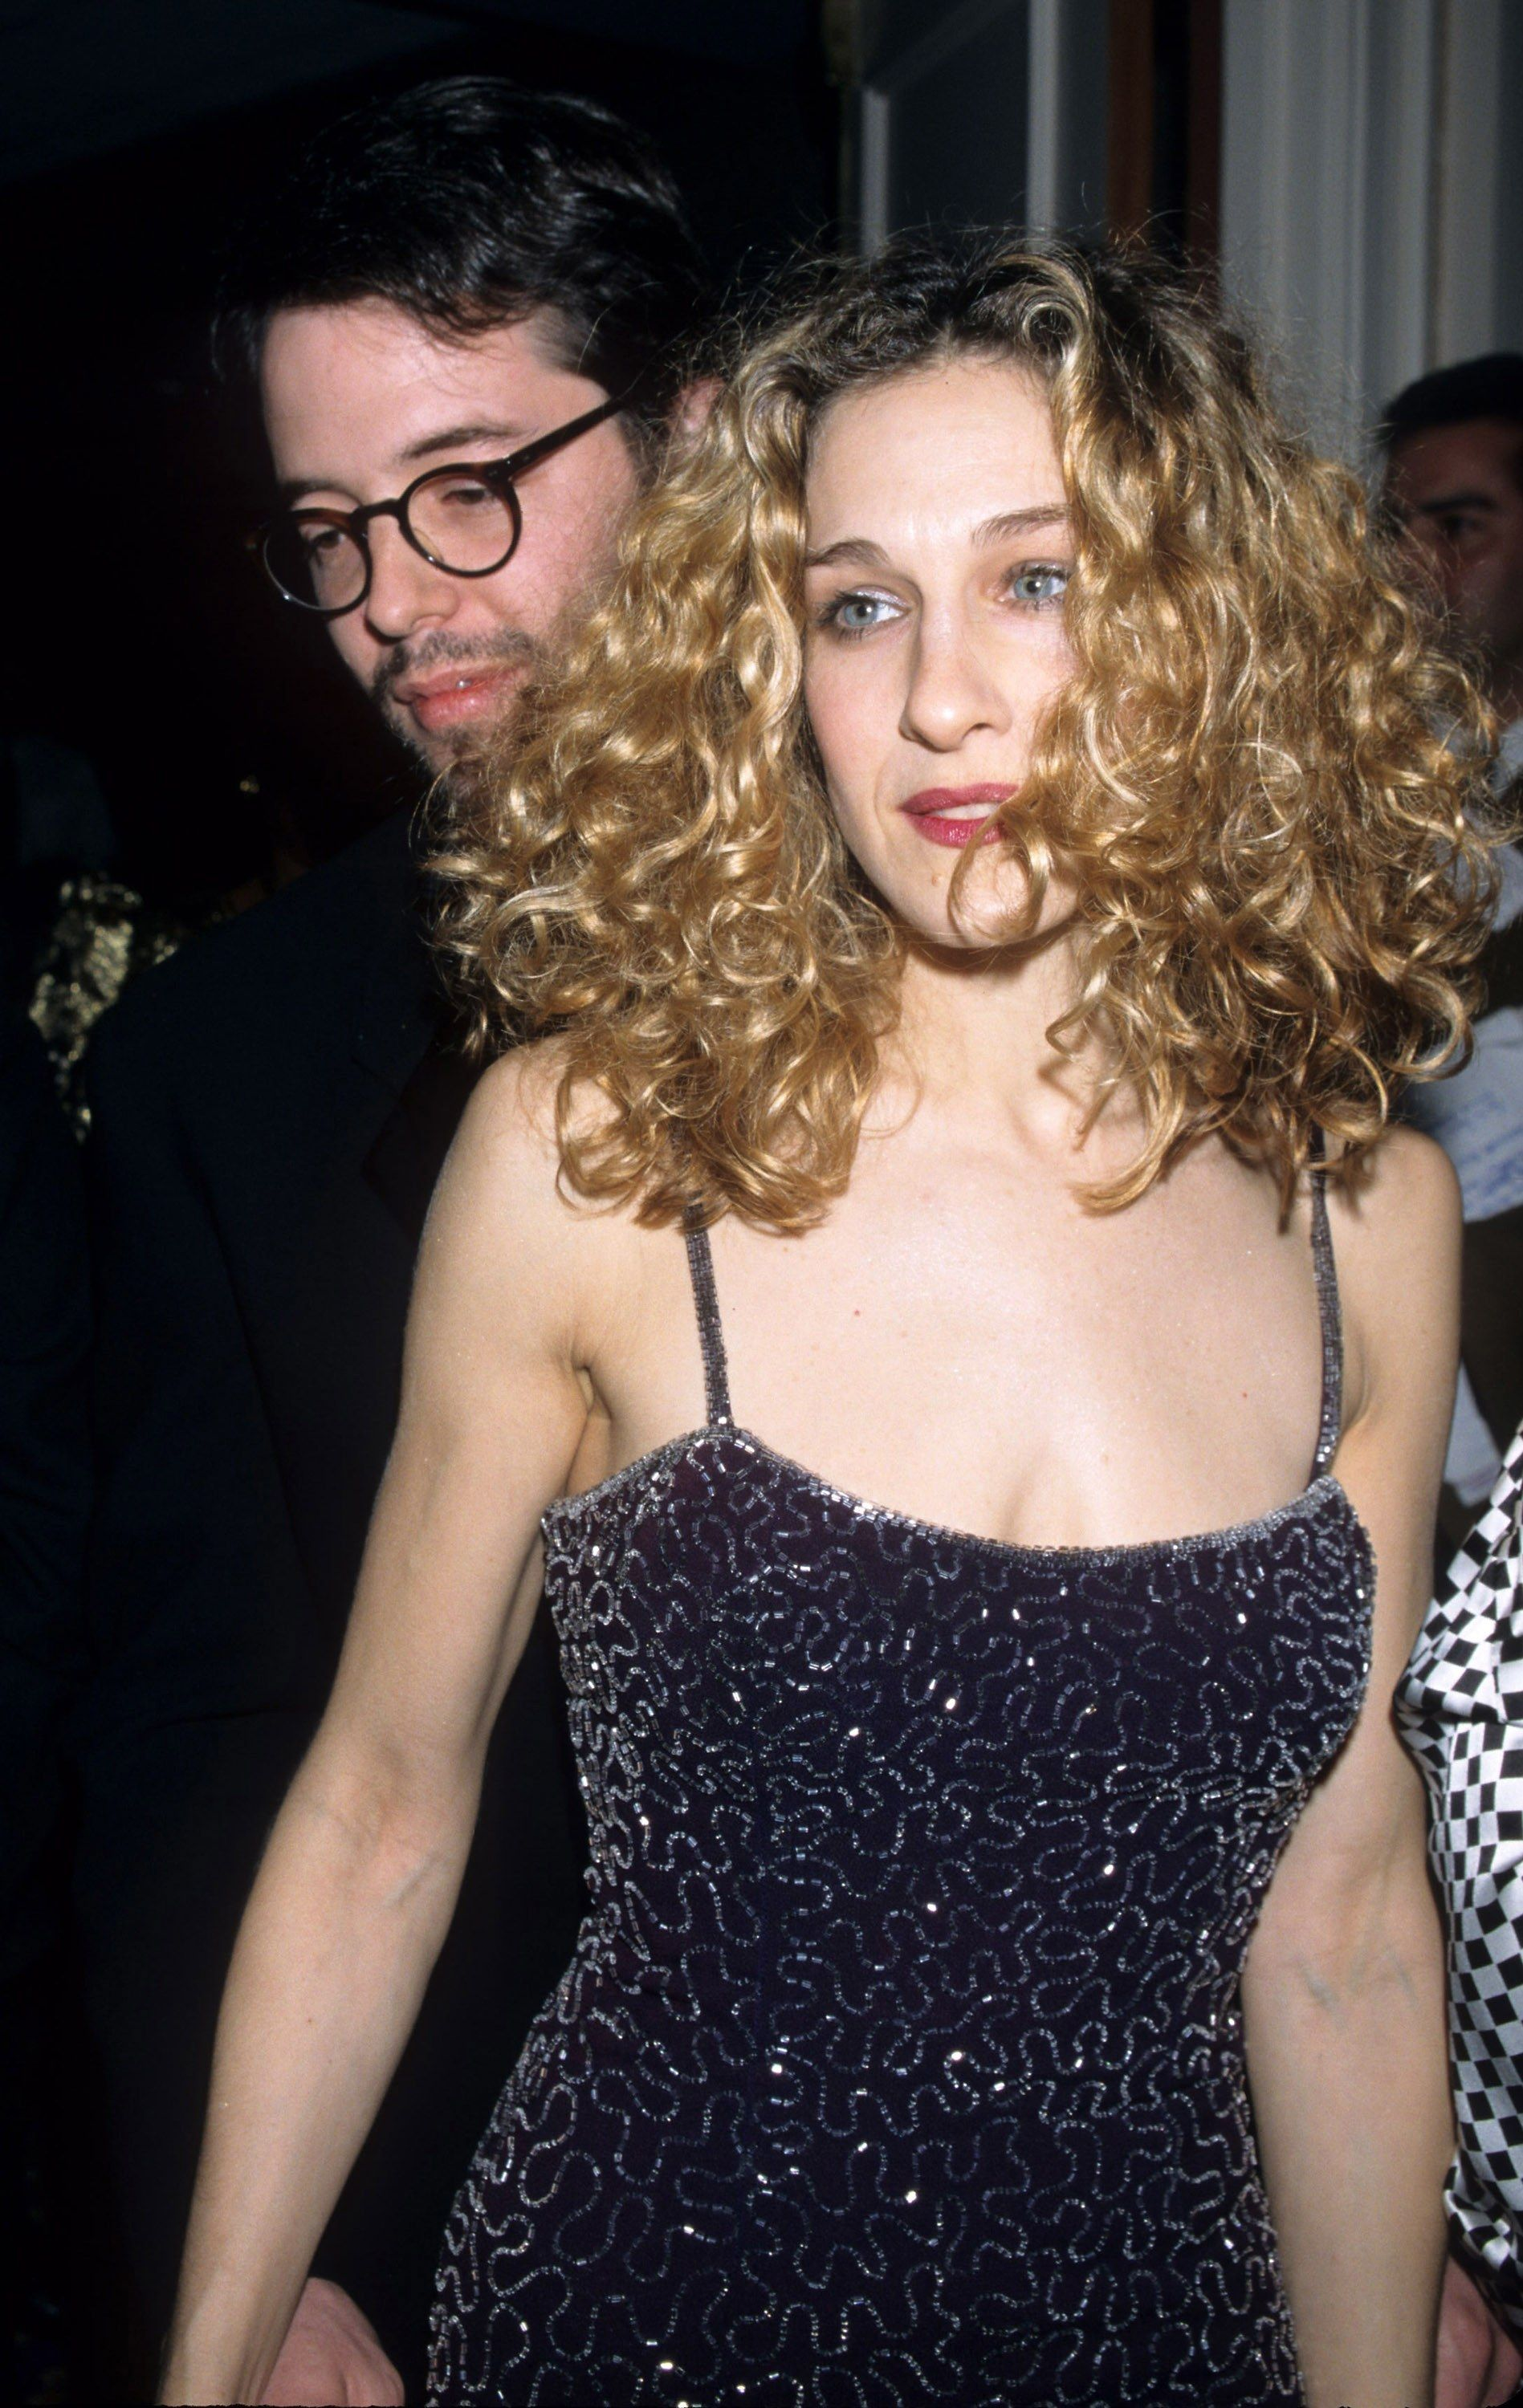 Sarah Jessica Parker S Best Curly Hair Moments Through The Years Curly Hair Styles Curly Hair Styles Naturally Curly Hair Celebrities